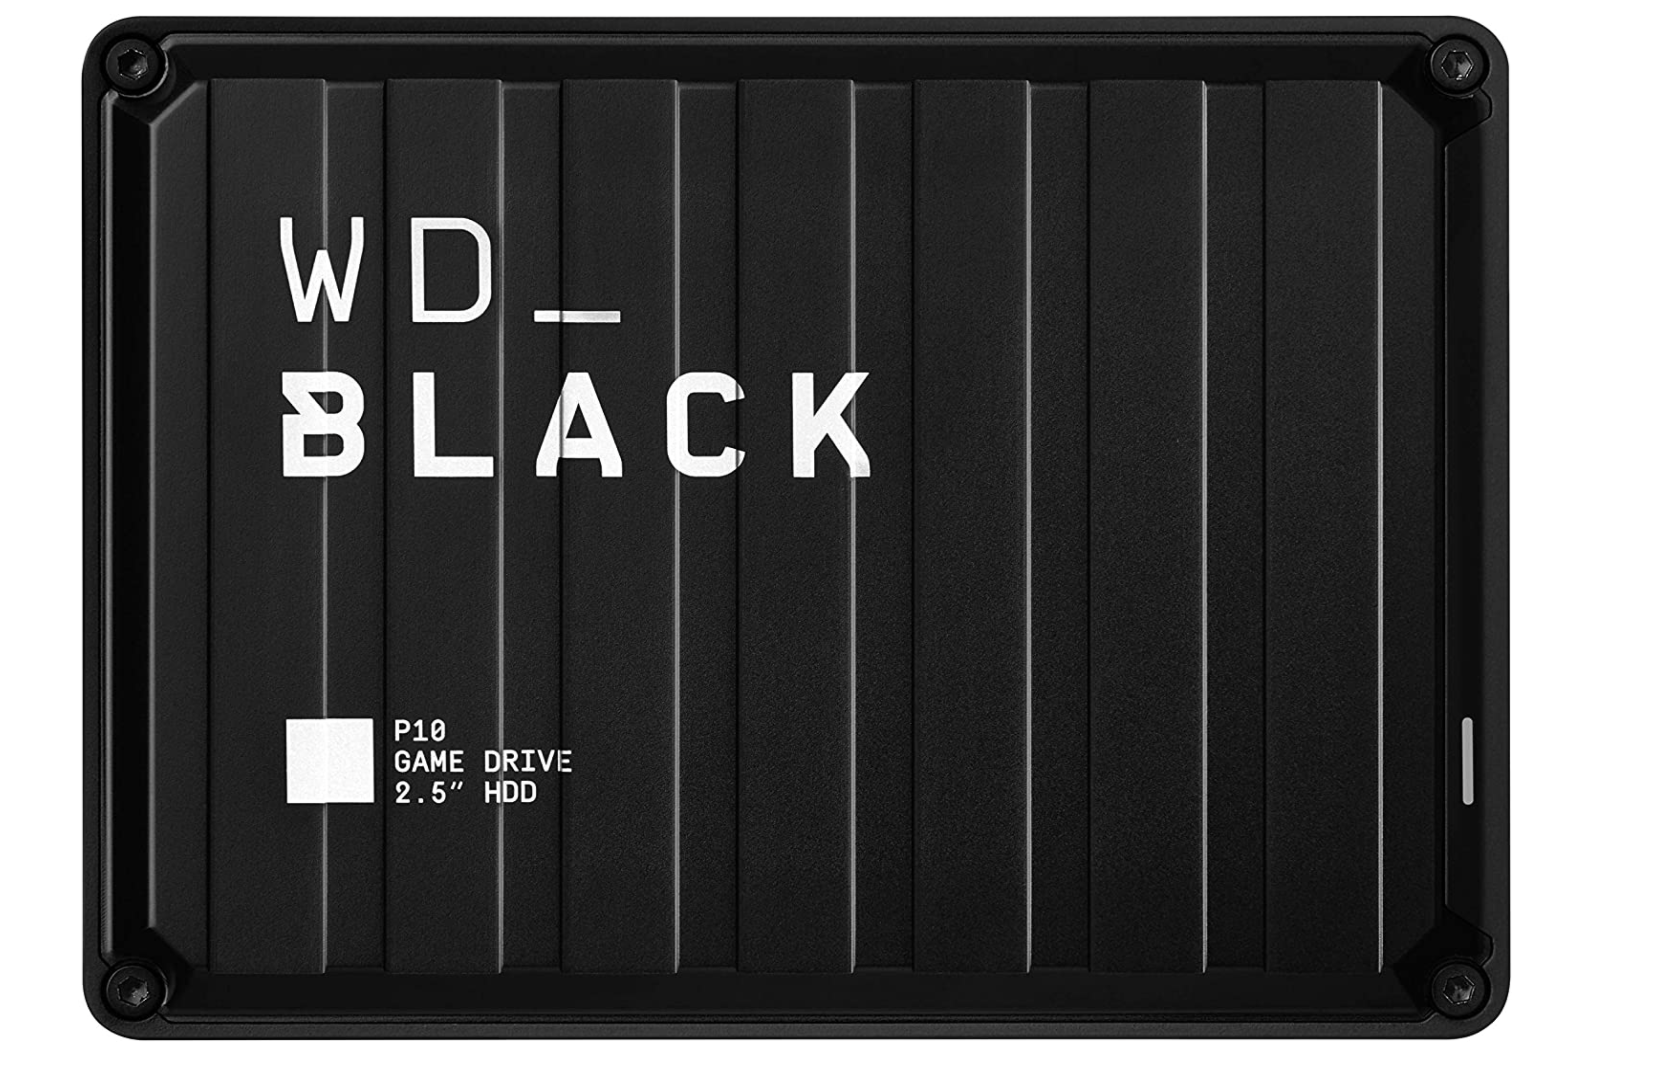 Expand and back up your game library with the WD Black 2TB P10 game drive, now 31% off